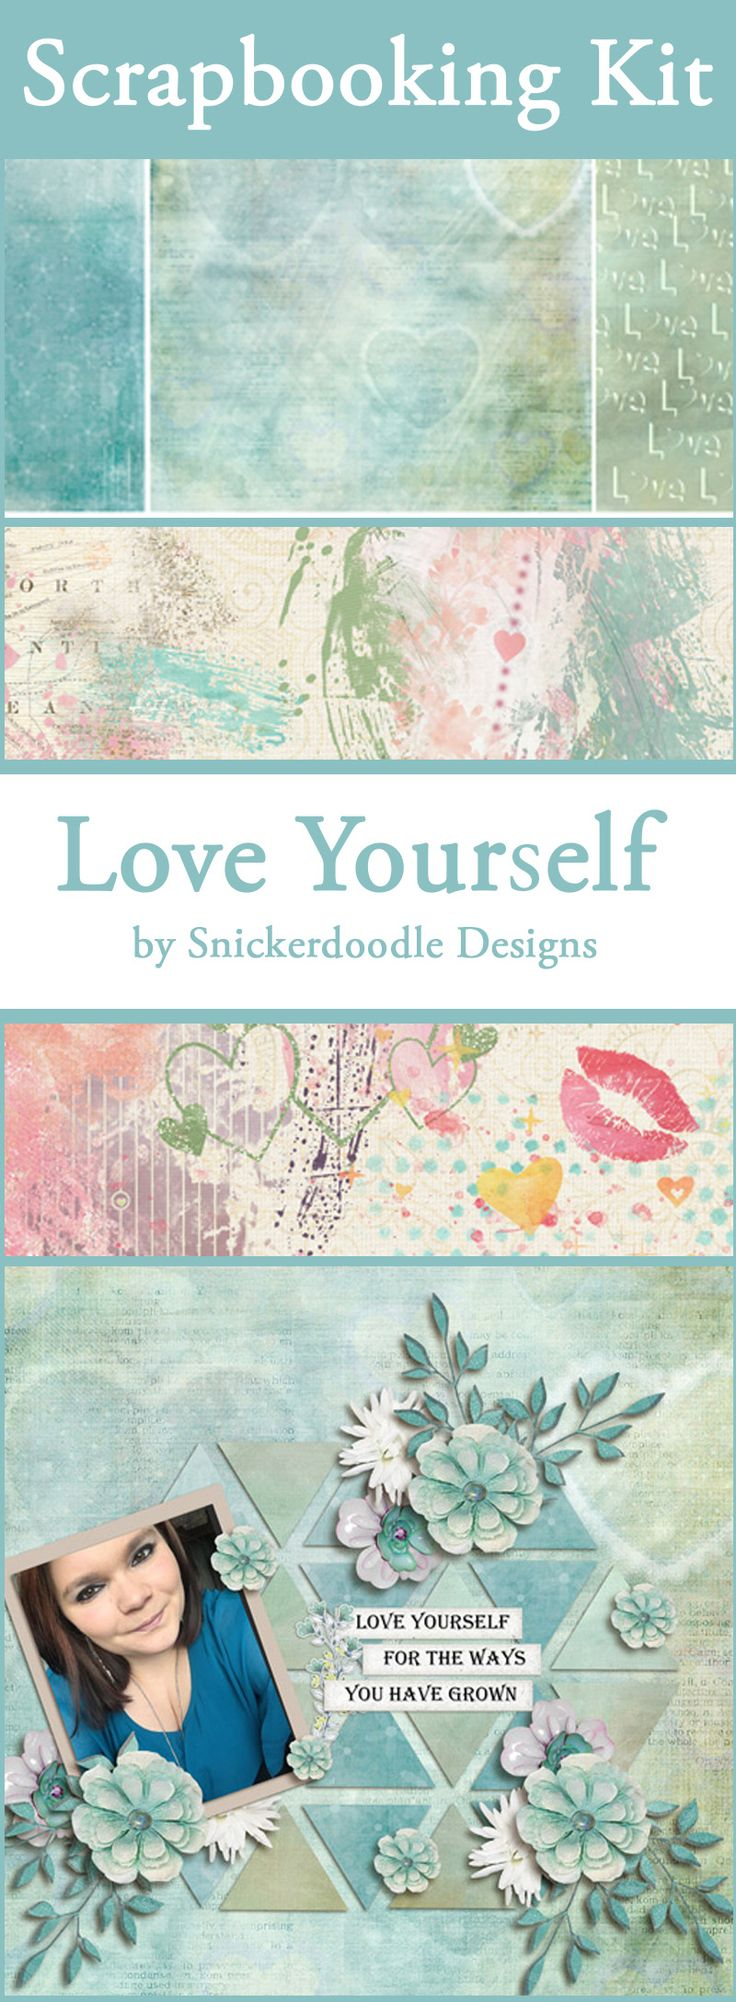 How to make scrapbook about yourself - Love Yourself Spring Digital Scrapbook Kit By Snickerdoodle Designs Cathy Chose The Perfect Photo For